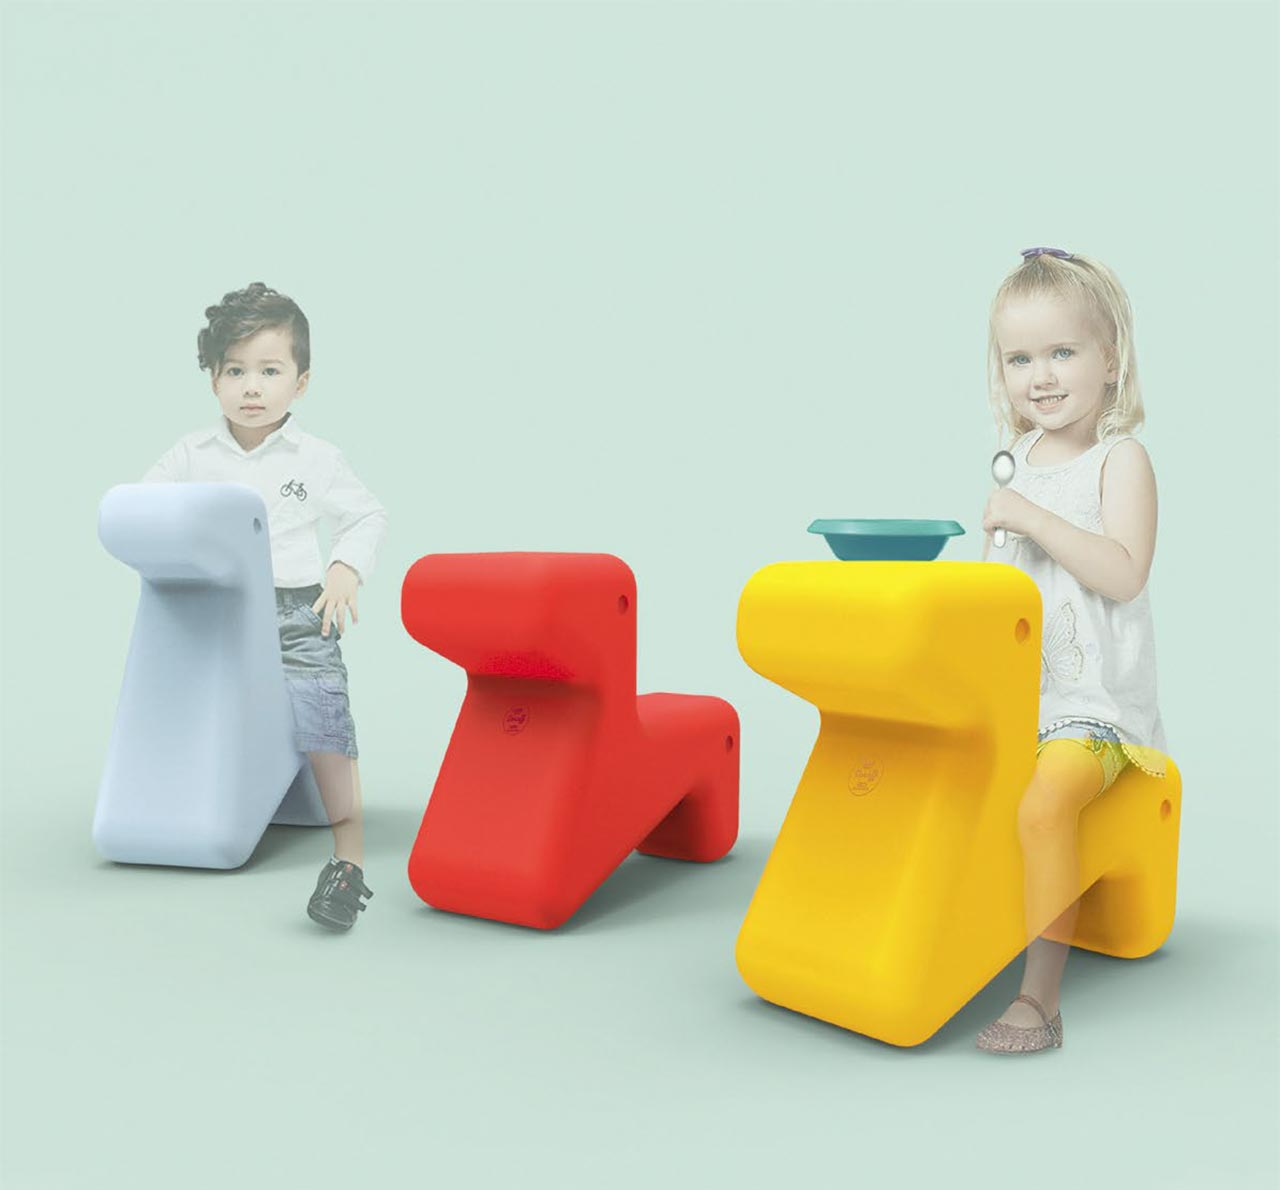 Architect Ben van Berkel ontwerpt kids collection voor Alessi